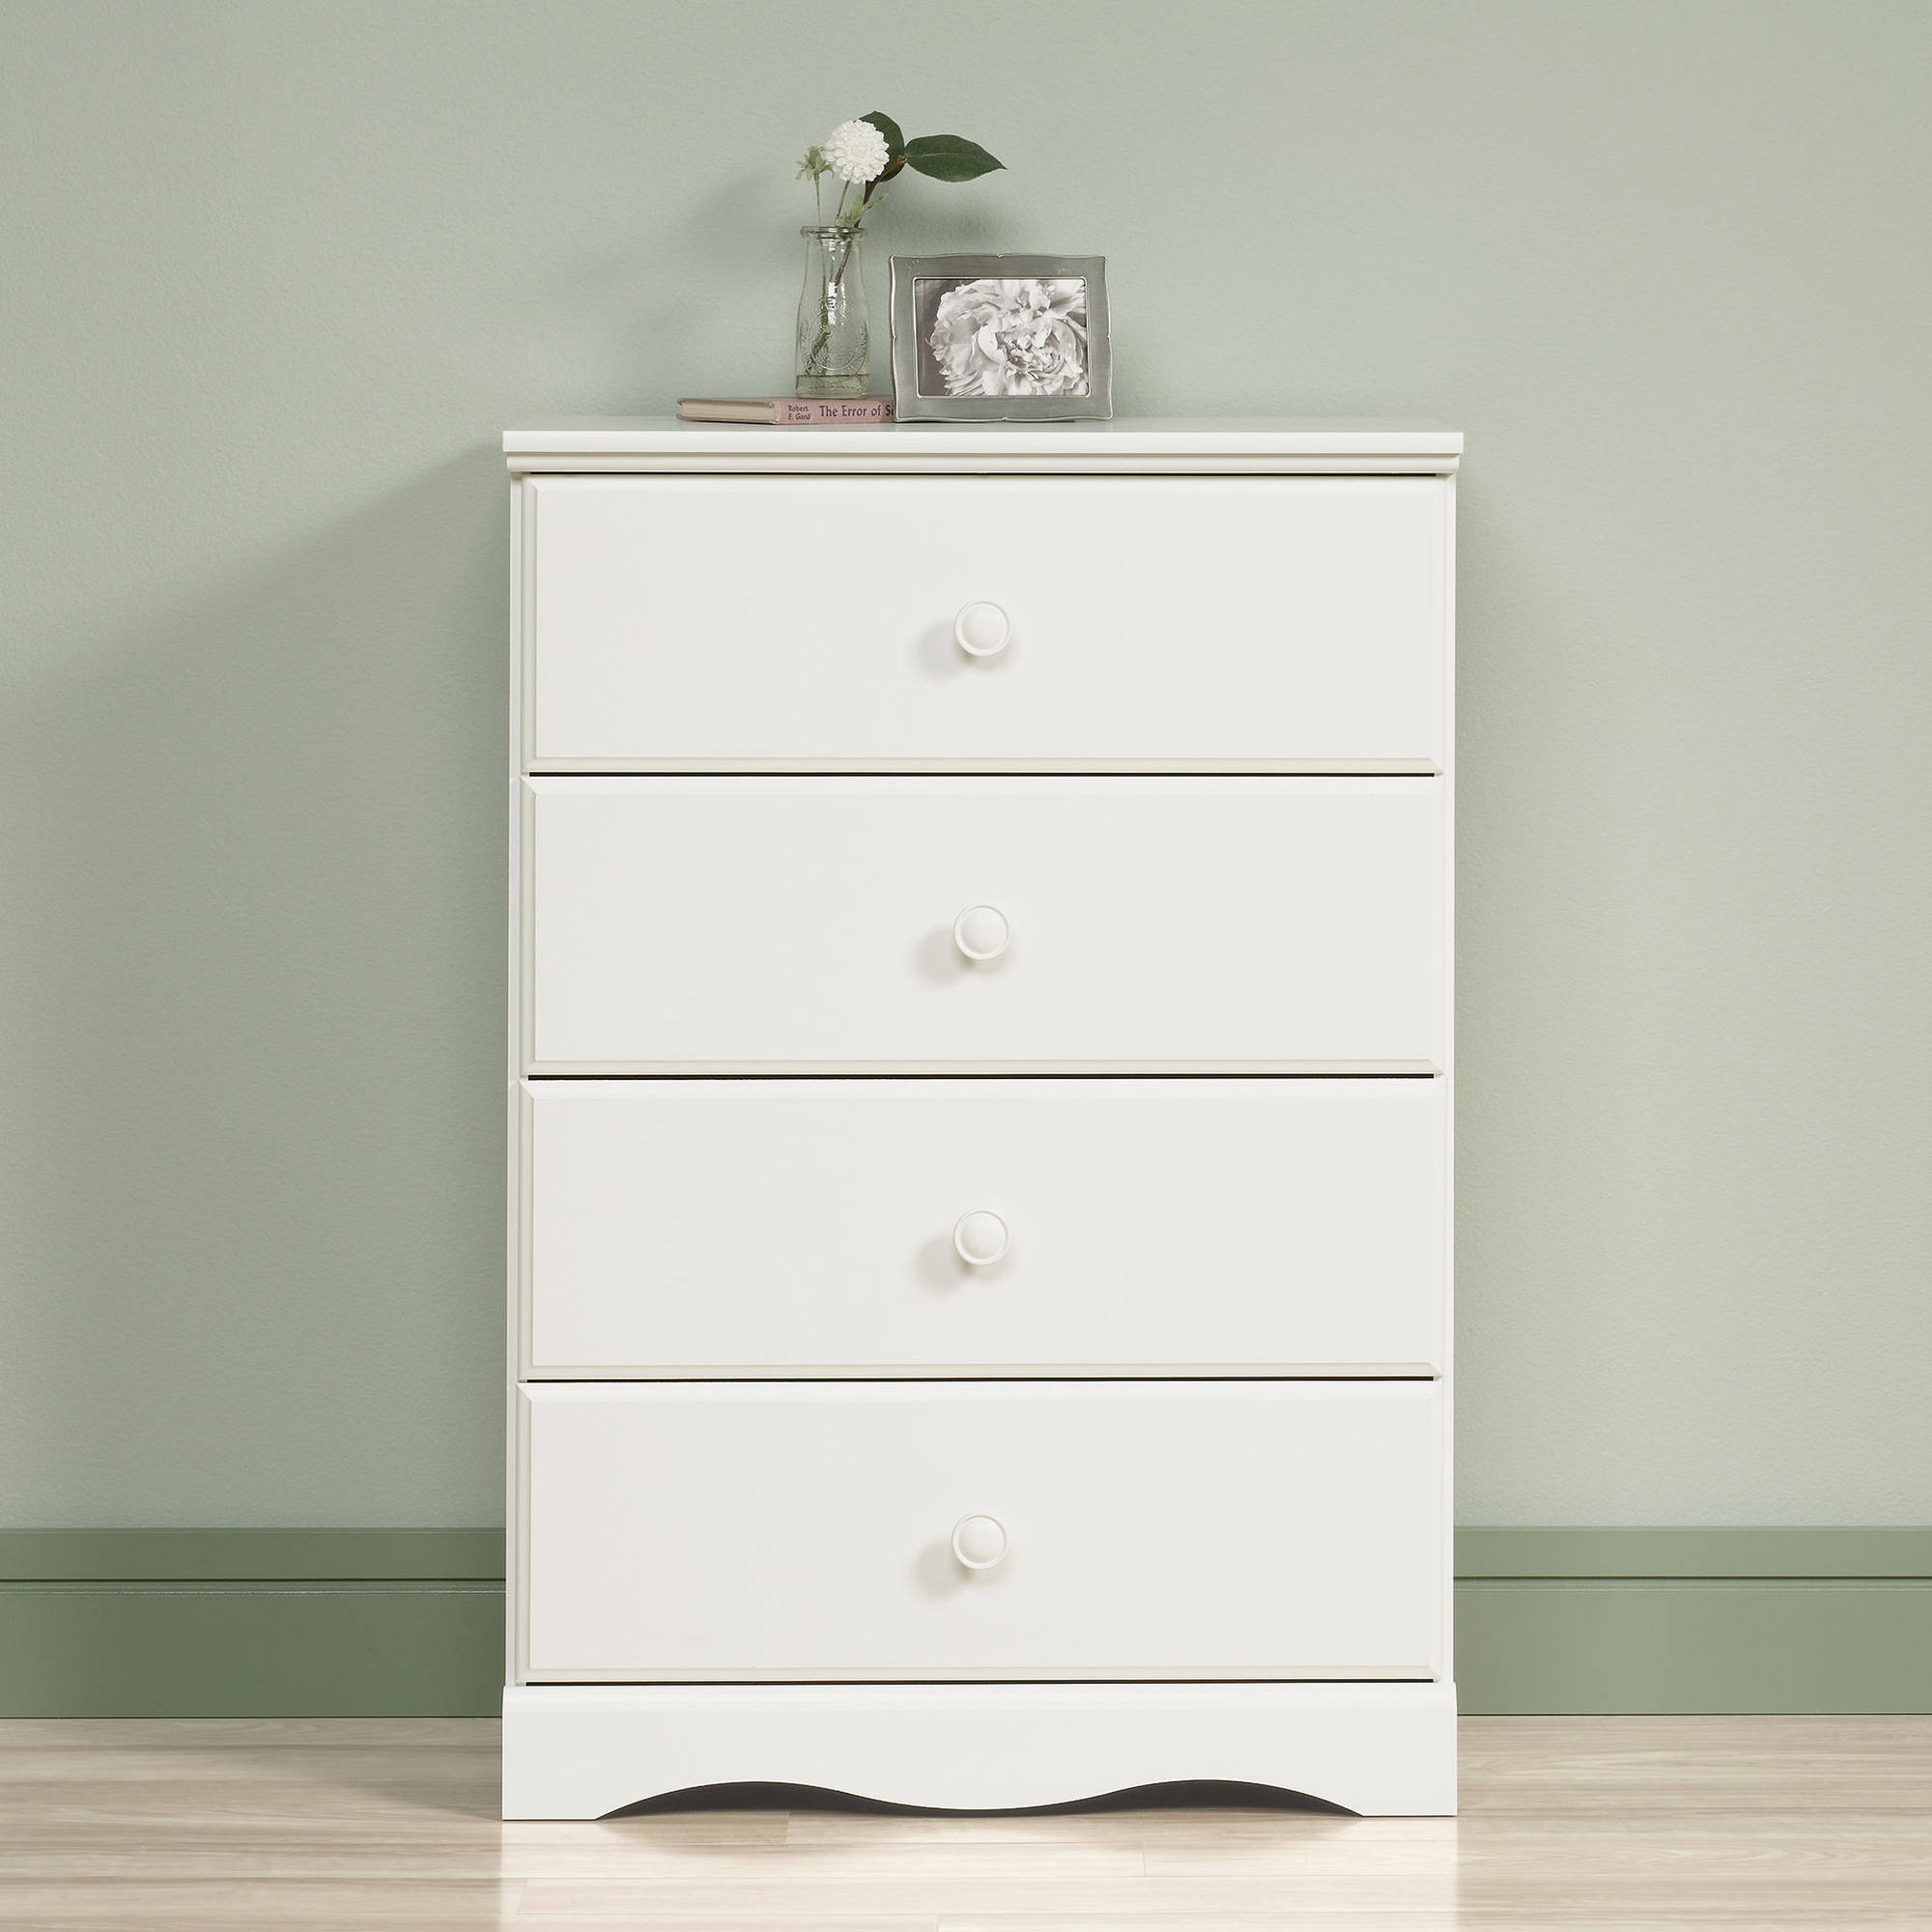 antoinette from new drawer drawers range tall ahf chest the dresser